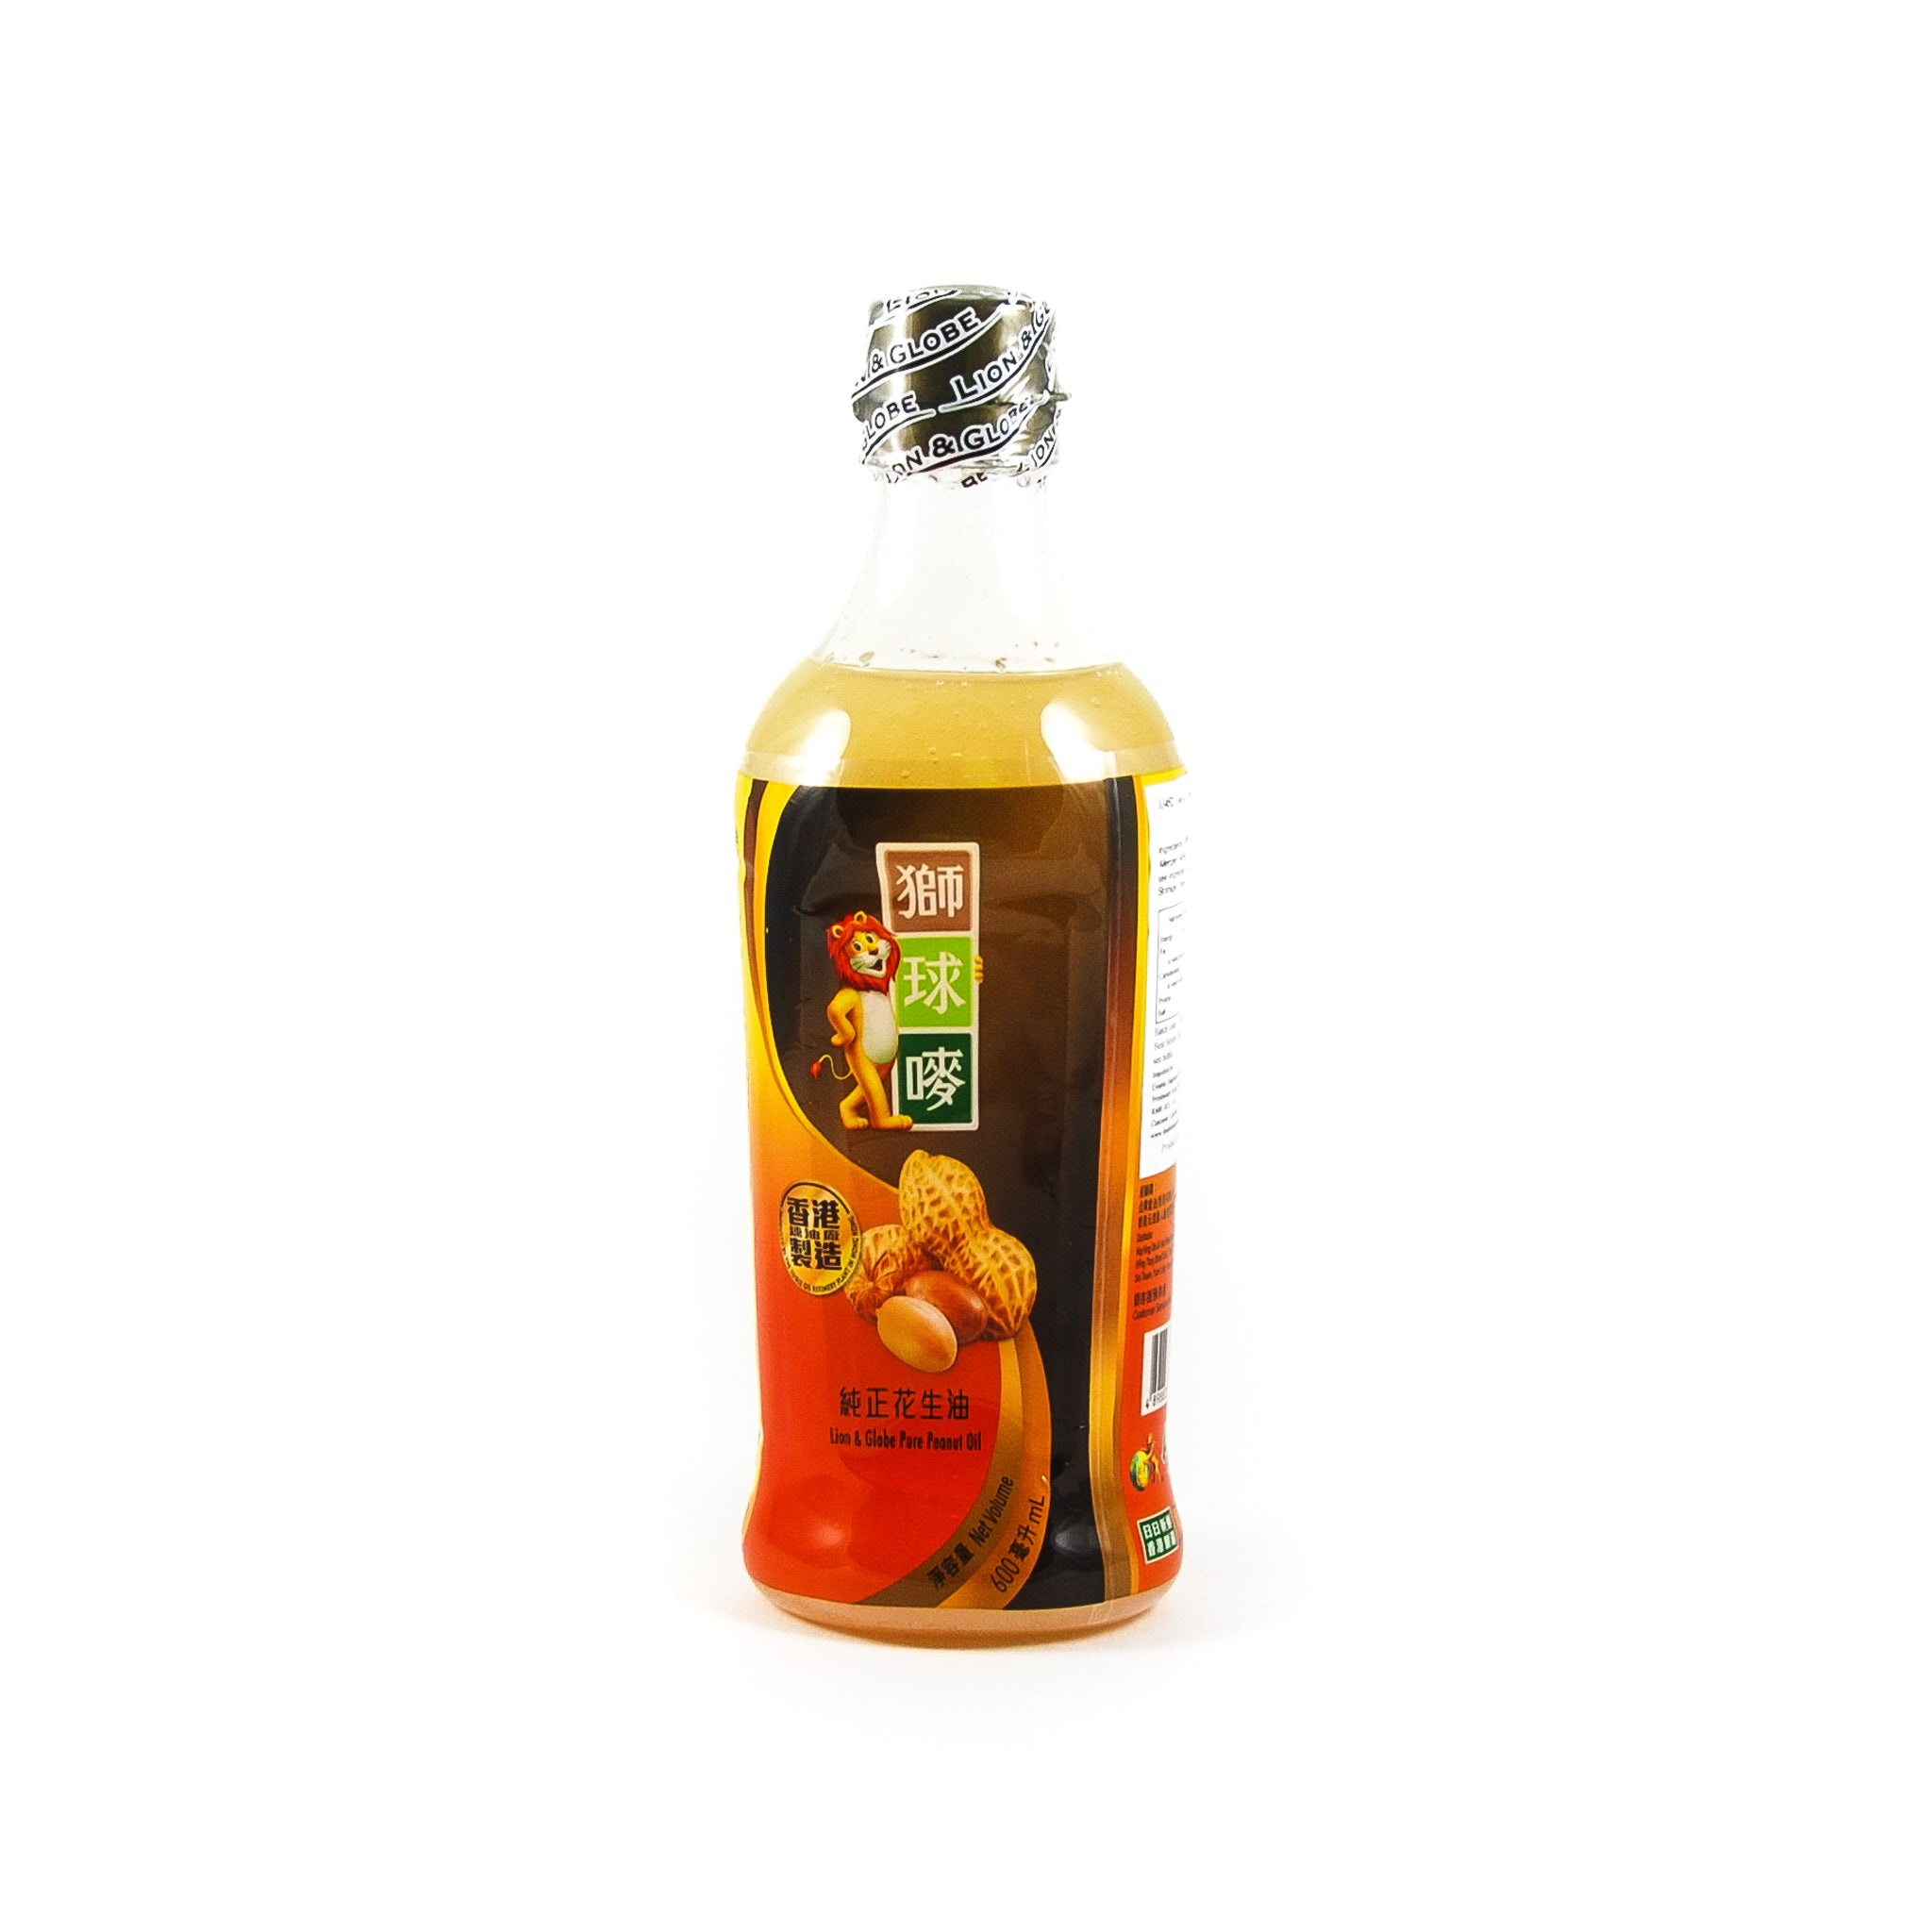 Lion Peanut Oil 600ml Ingredients Oils & Vinegars